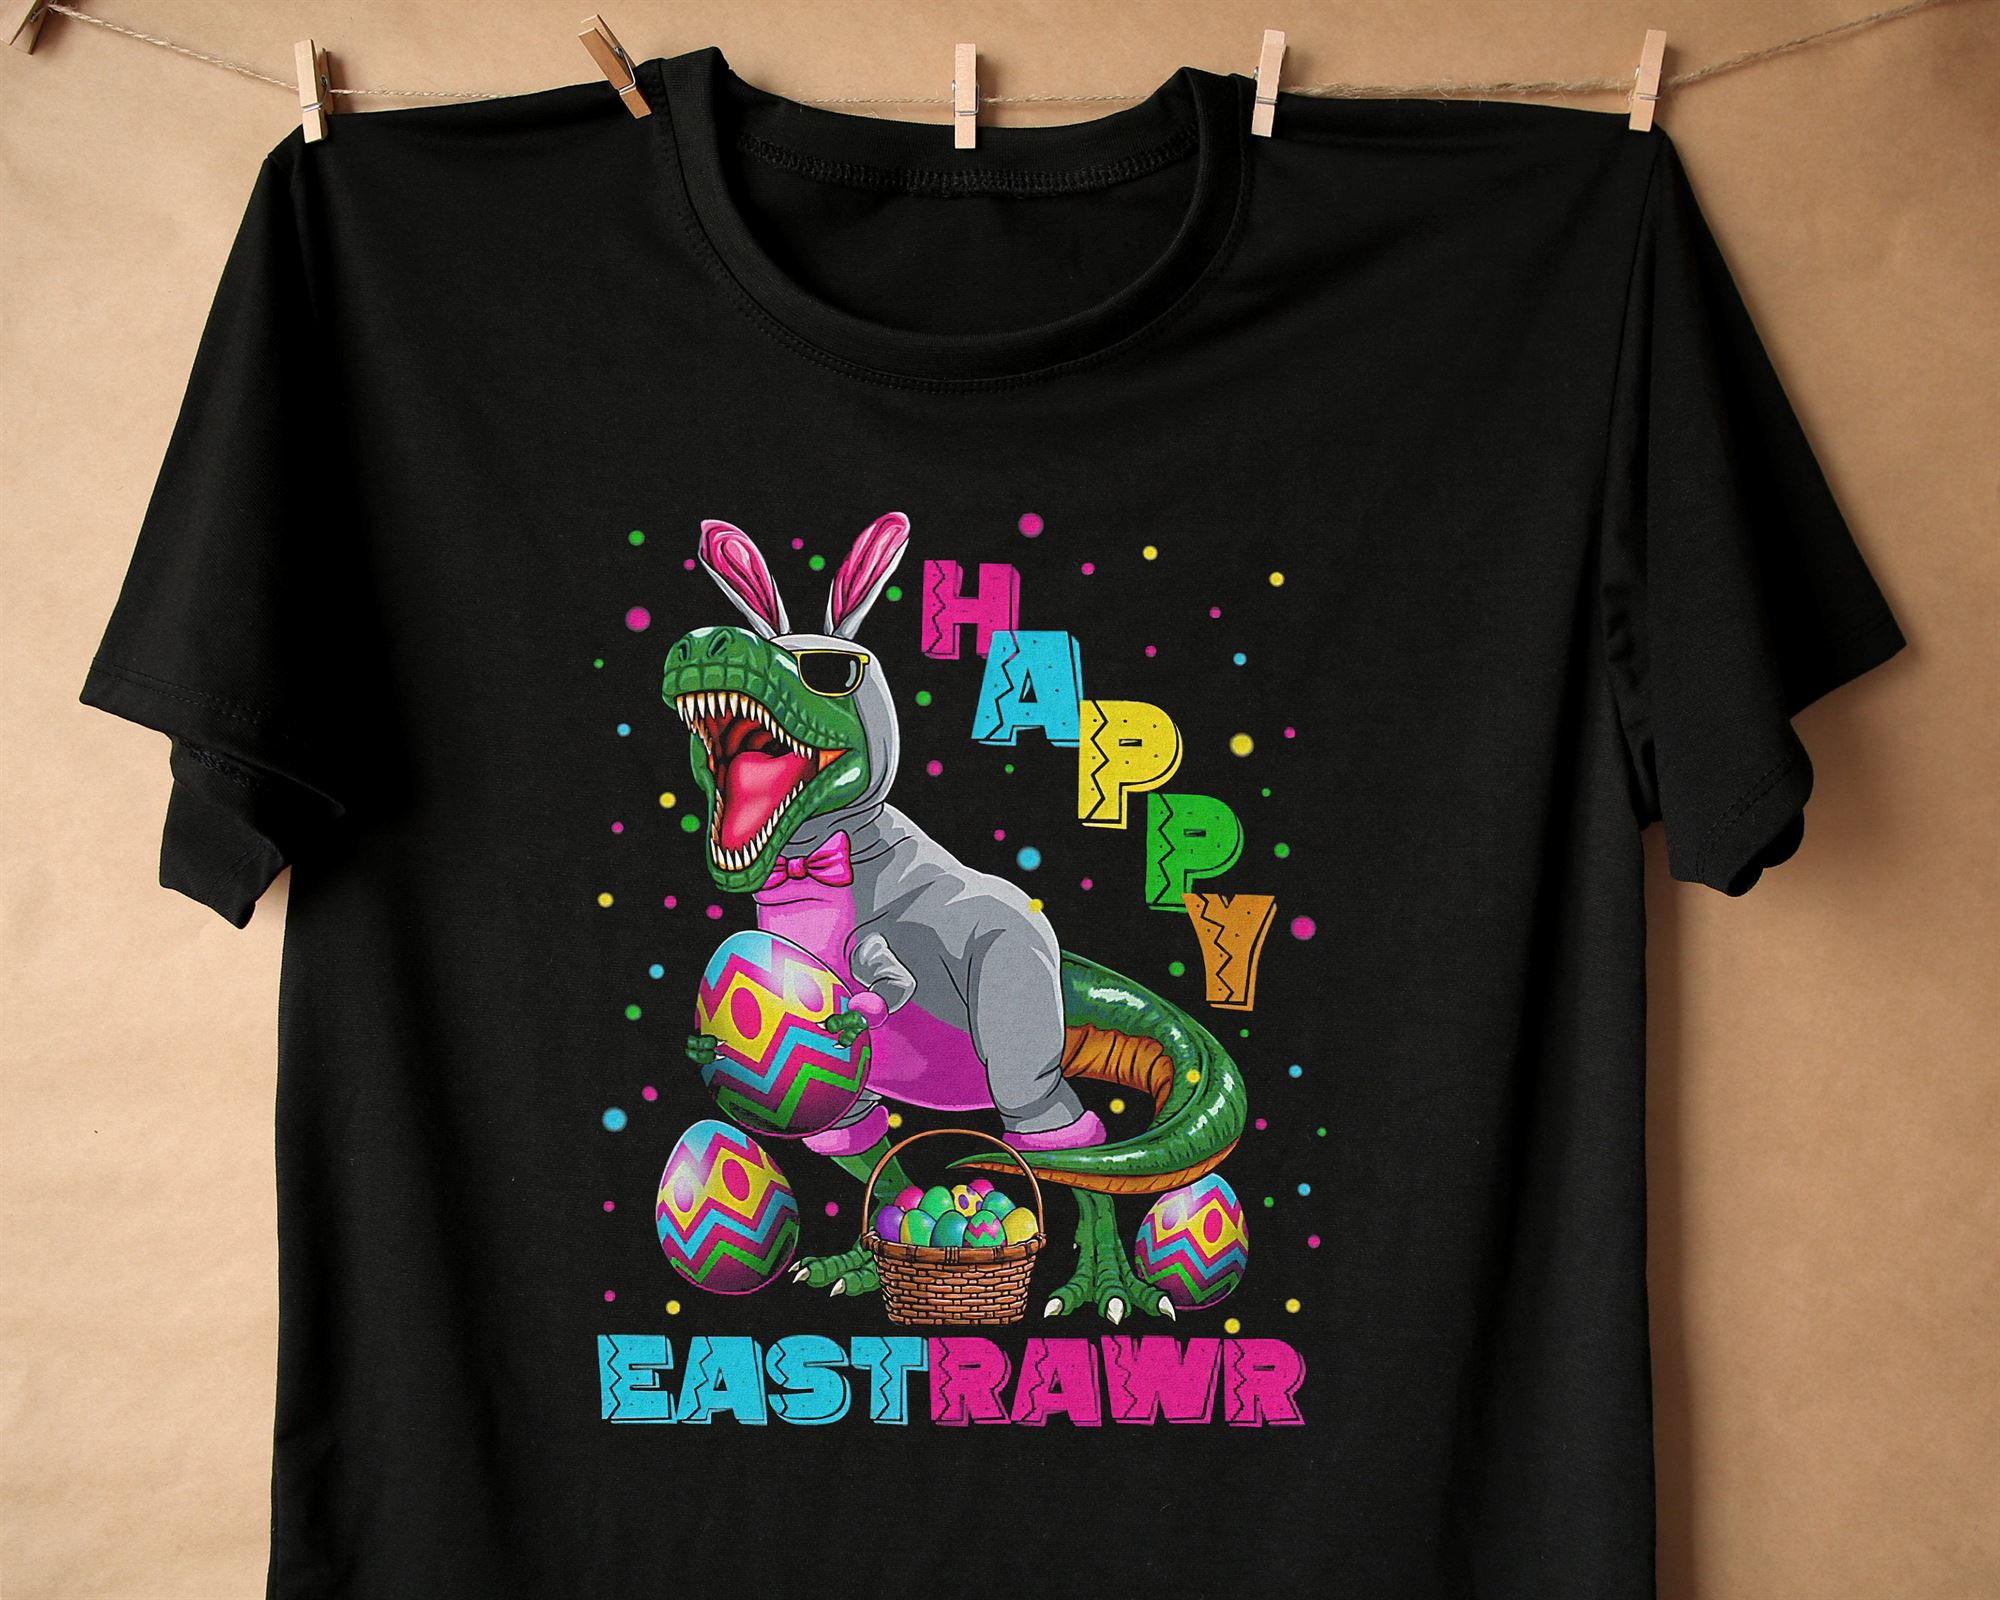 Happy Eastraw T-shirt Easter T-shirt Dinosaur Easter T-shirt H4fos